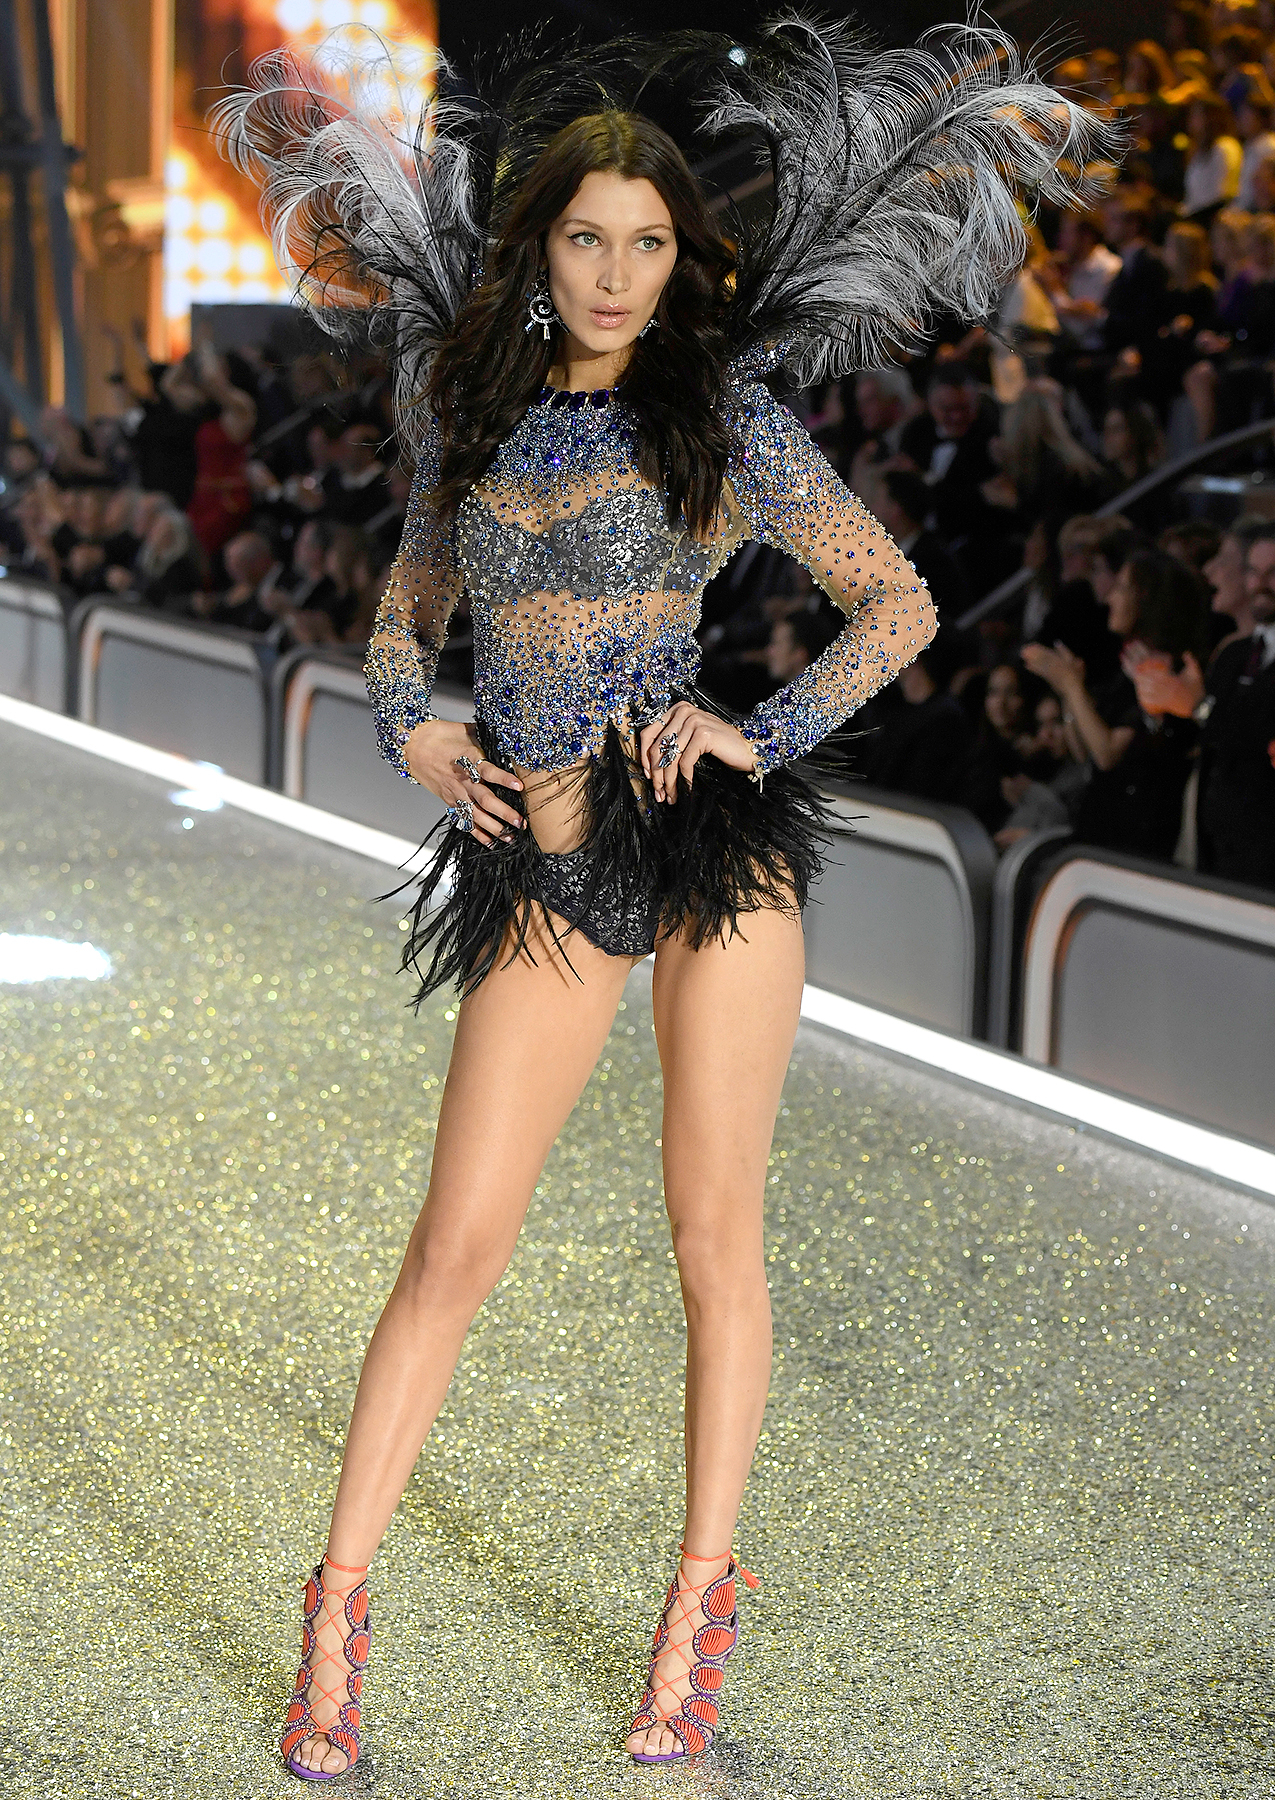 Bella Hadid walks the runway at the Victoria's Secret Fashion Show on November 30, 2016 in Paris, France.